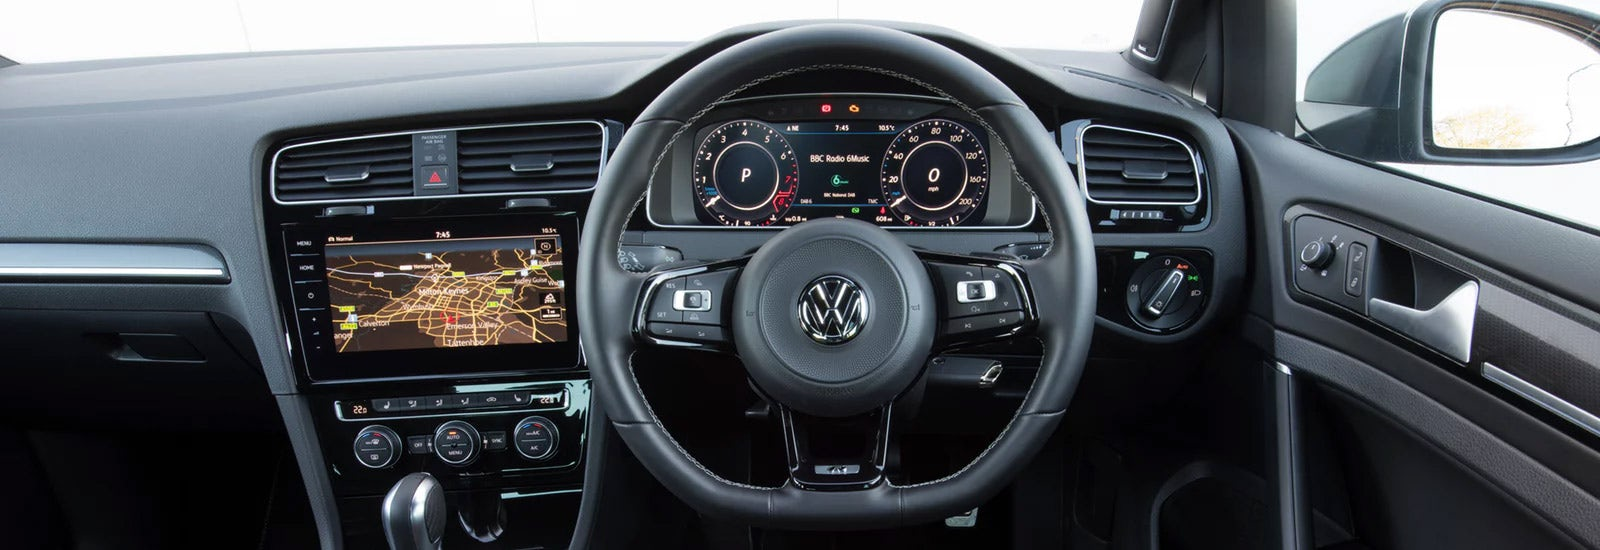 2020 vw golf r price specs and release date carwow. Black Bedroom Furniture Sets. Home Design Ideas